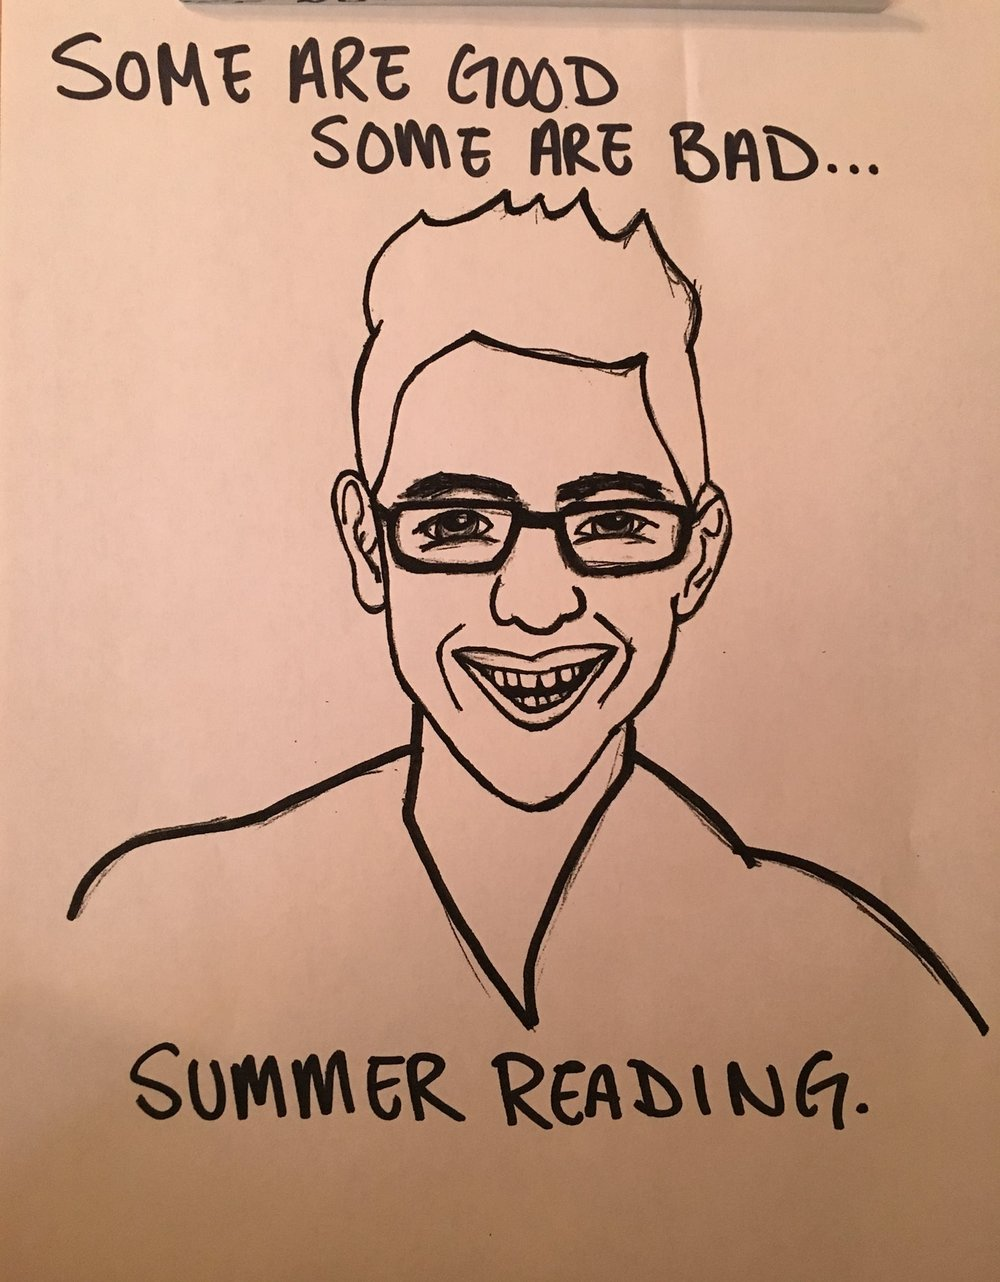 Summer Reading fan art by listener Katie Tedesco